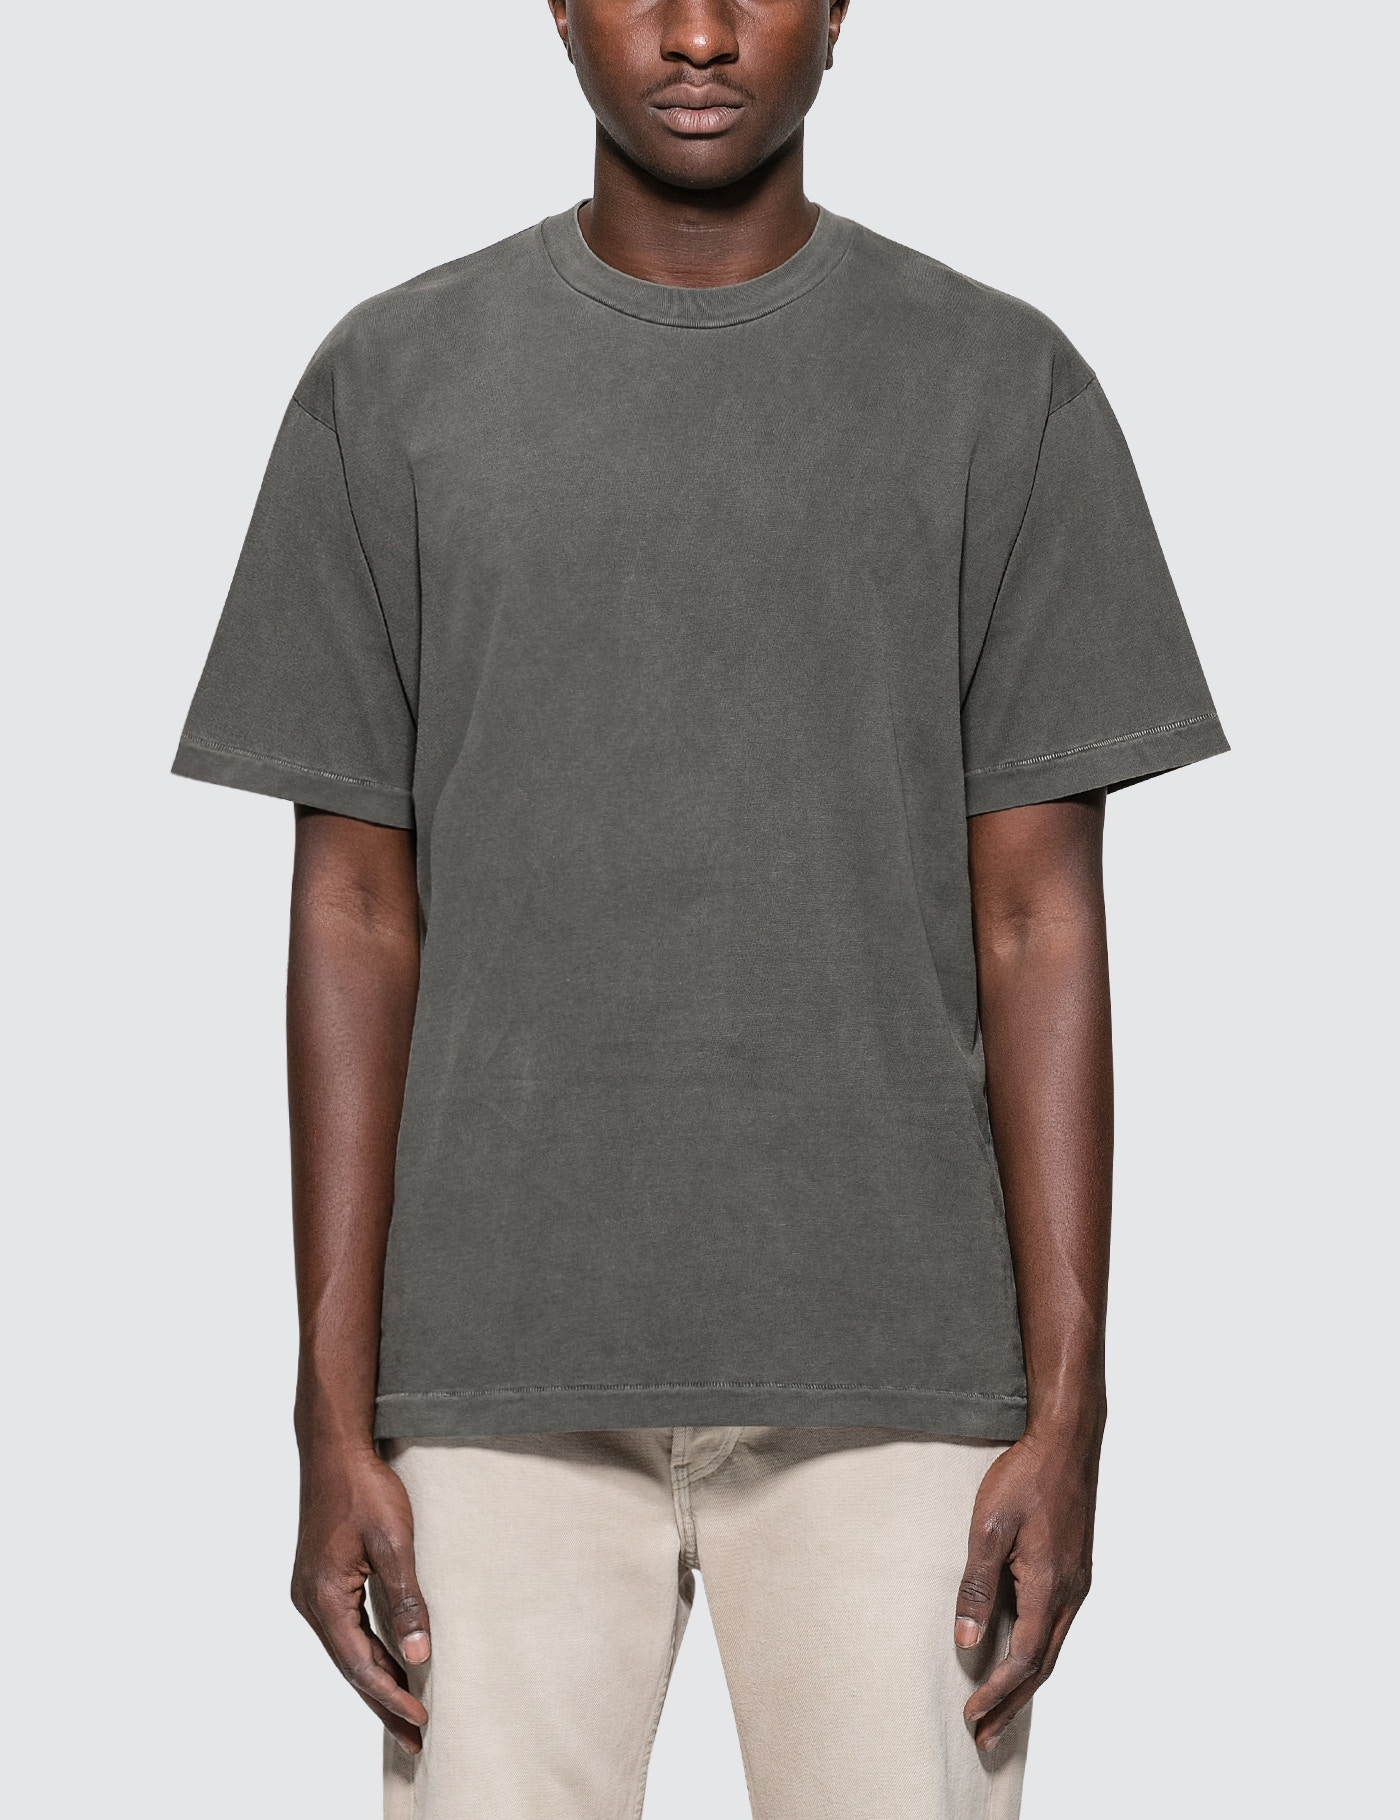 a210c98f7d5 Buy Original Yeezy Season 6 Classic S/S T-Shirt at Indonesia | BOBOBOBO